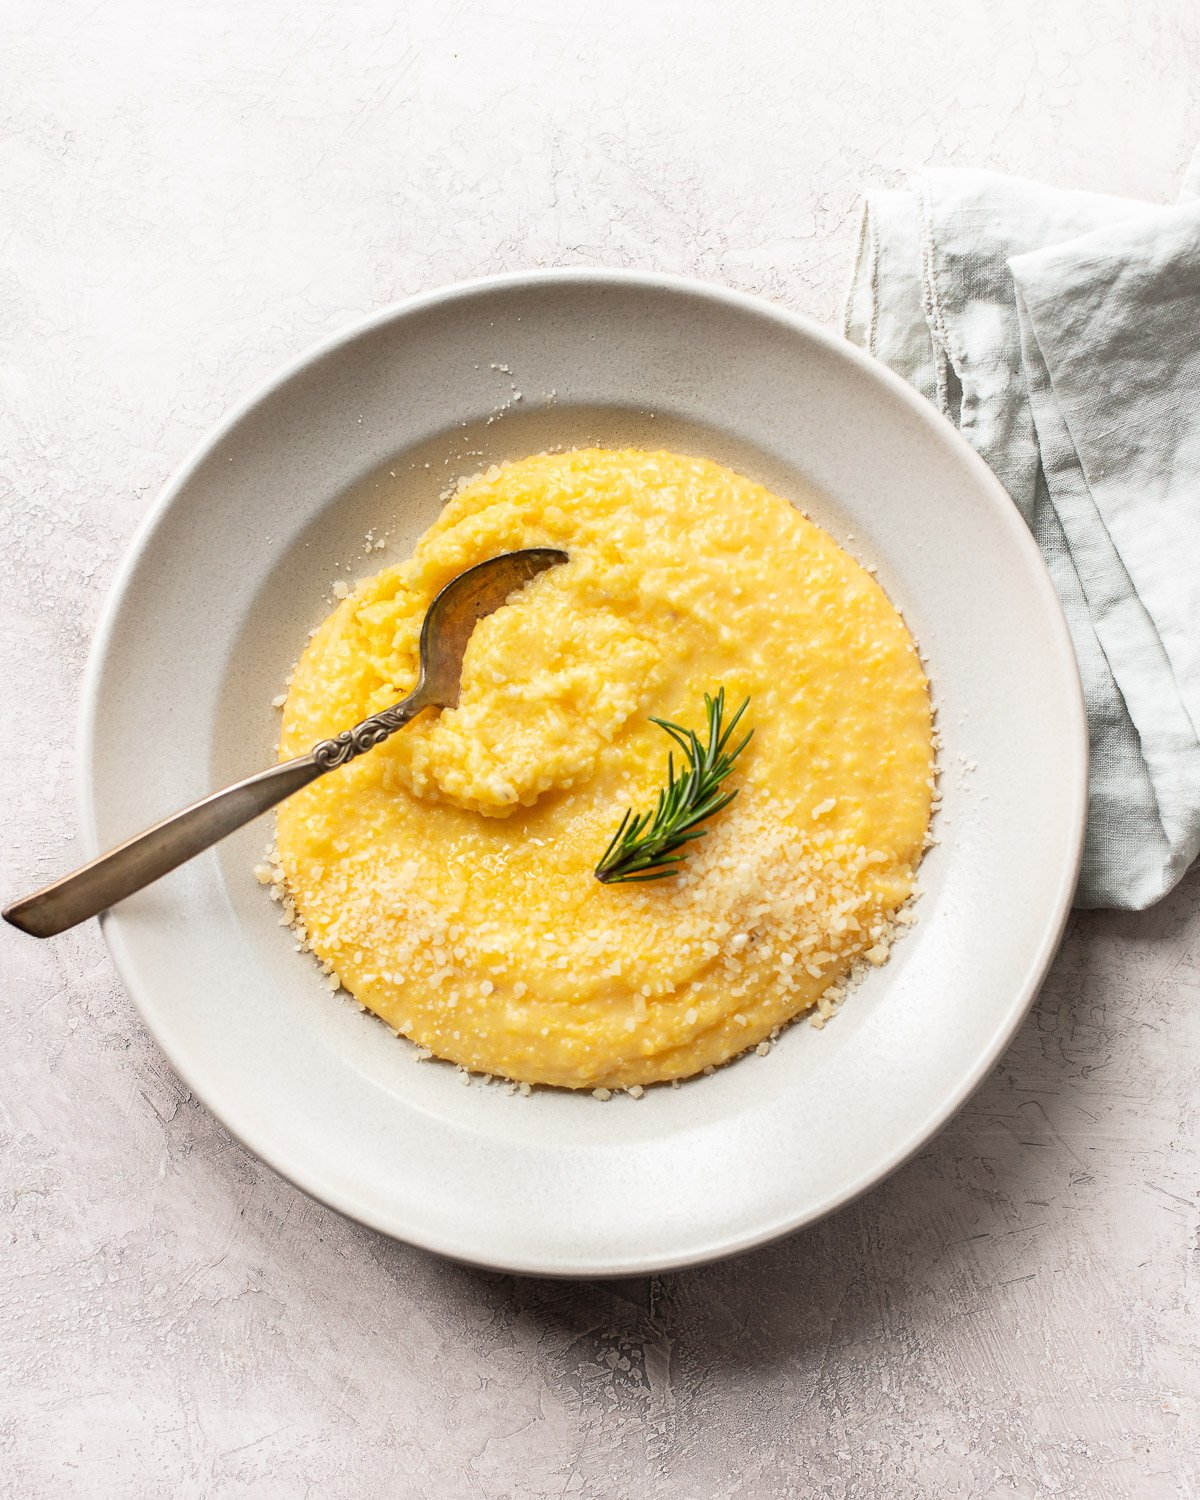 An overhead photo of a white bowl and a spoon dipping into creamy polenta topped with grated Parmesan cheese and a sprig of rosemary on top.